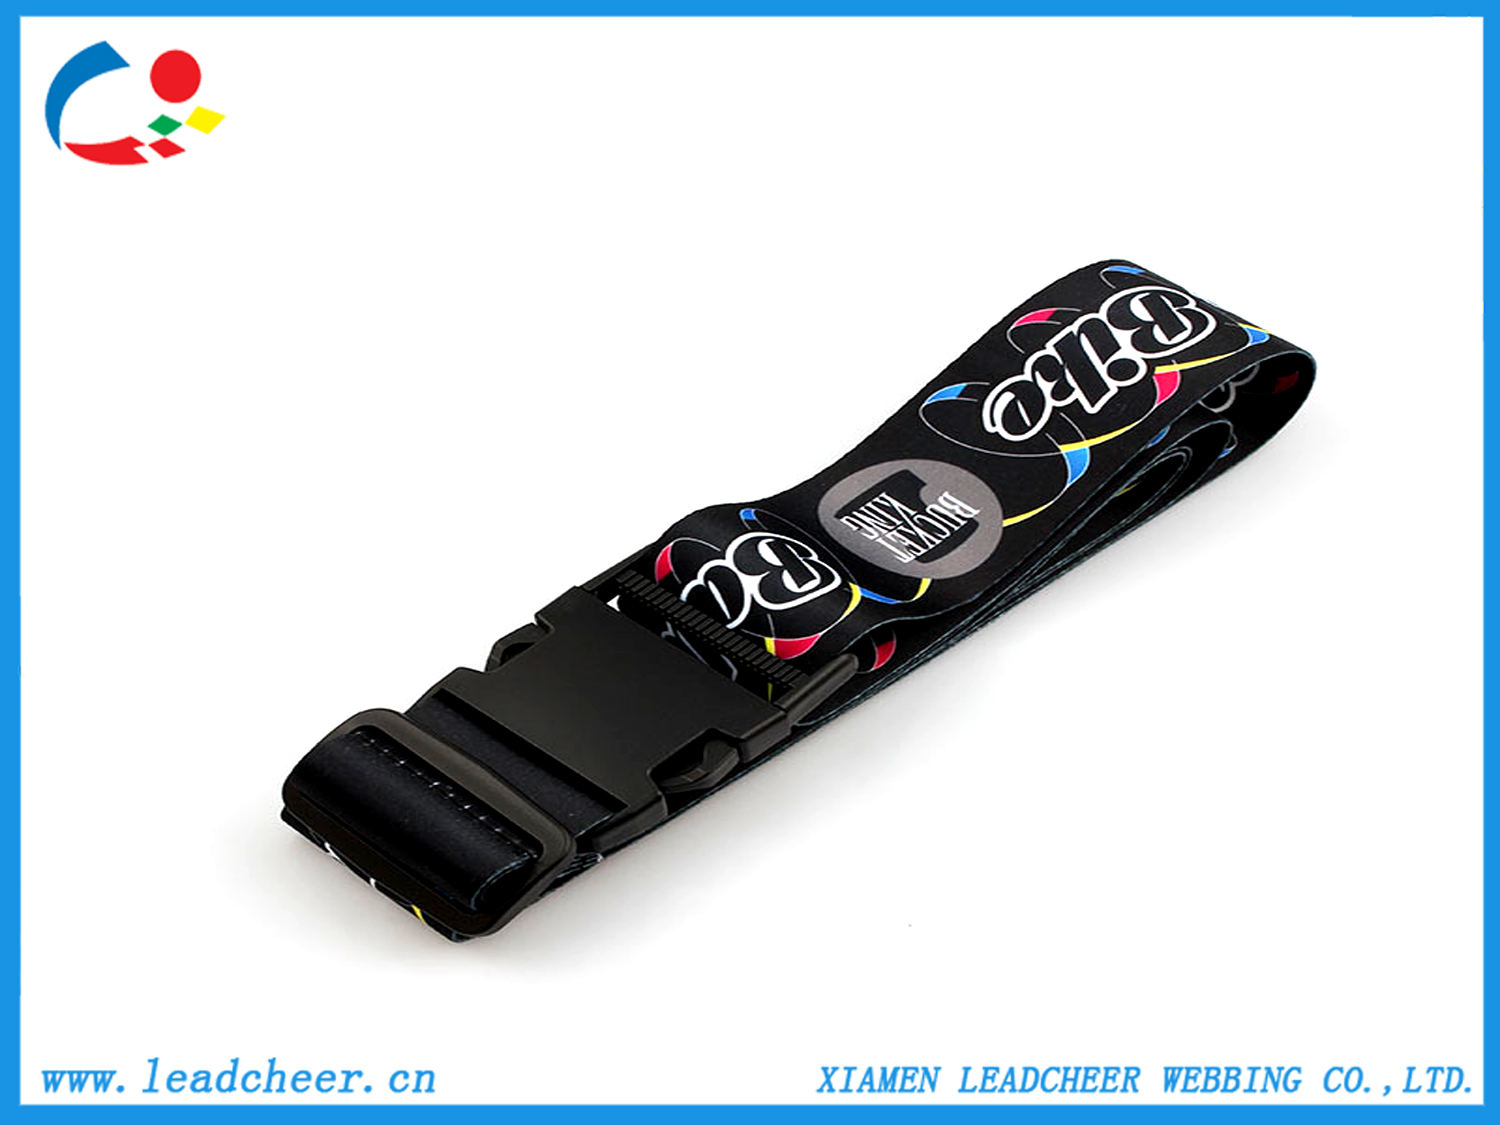 Luggage-Strap-With-detach-Lock-With-Plastic 副本.jpg